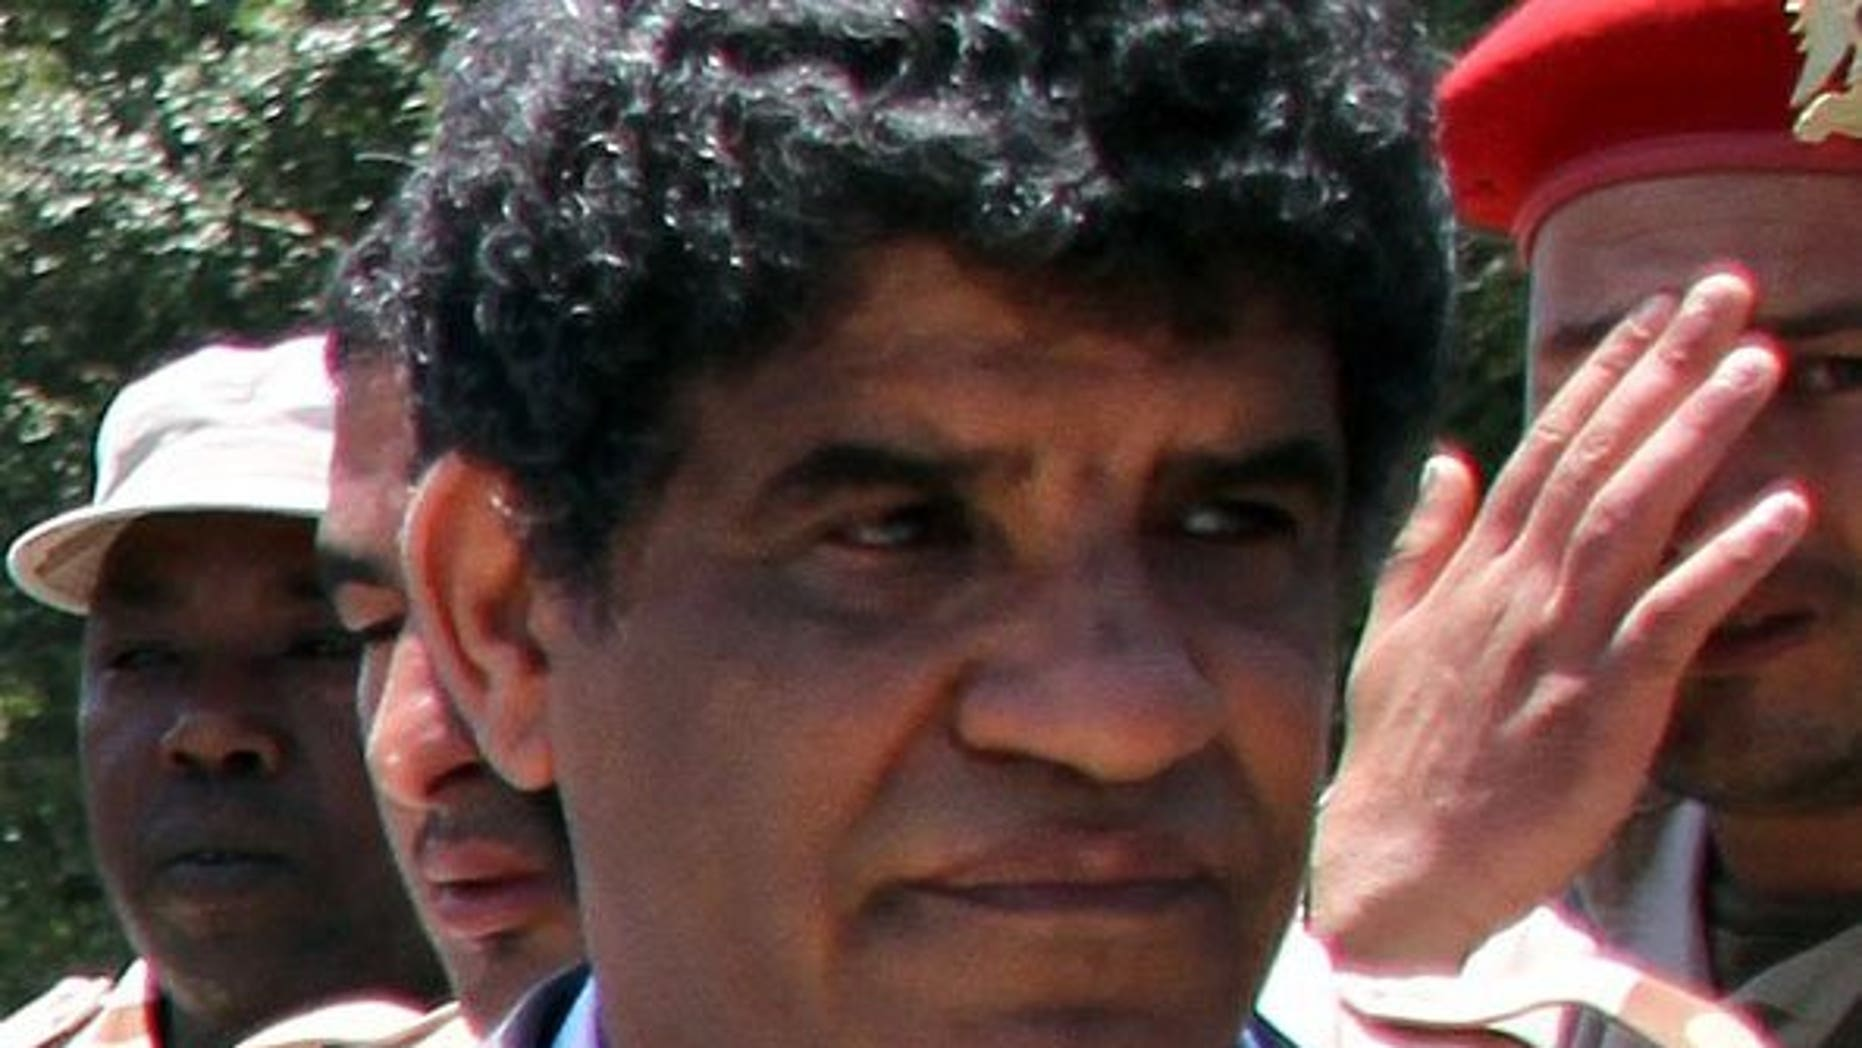 The then head of Libyan intelligence, Abdullah al-Senussi, is pictured in Tripoli on June 22, 2011. Senussi's daughter, who was reportedly kidnapped last week, has been freed, a member of her tribe said.